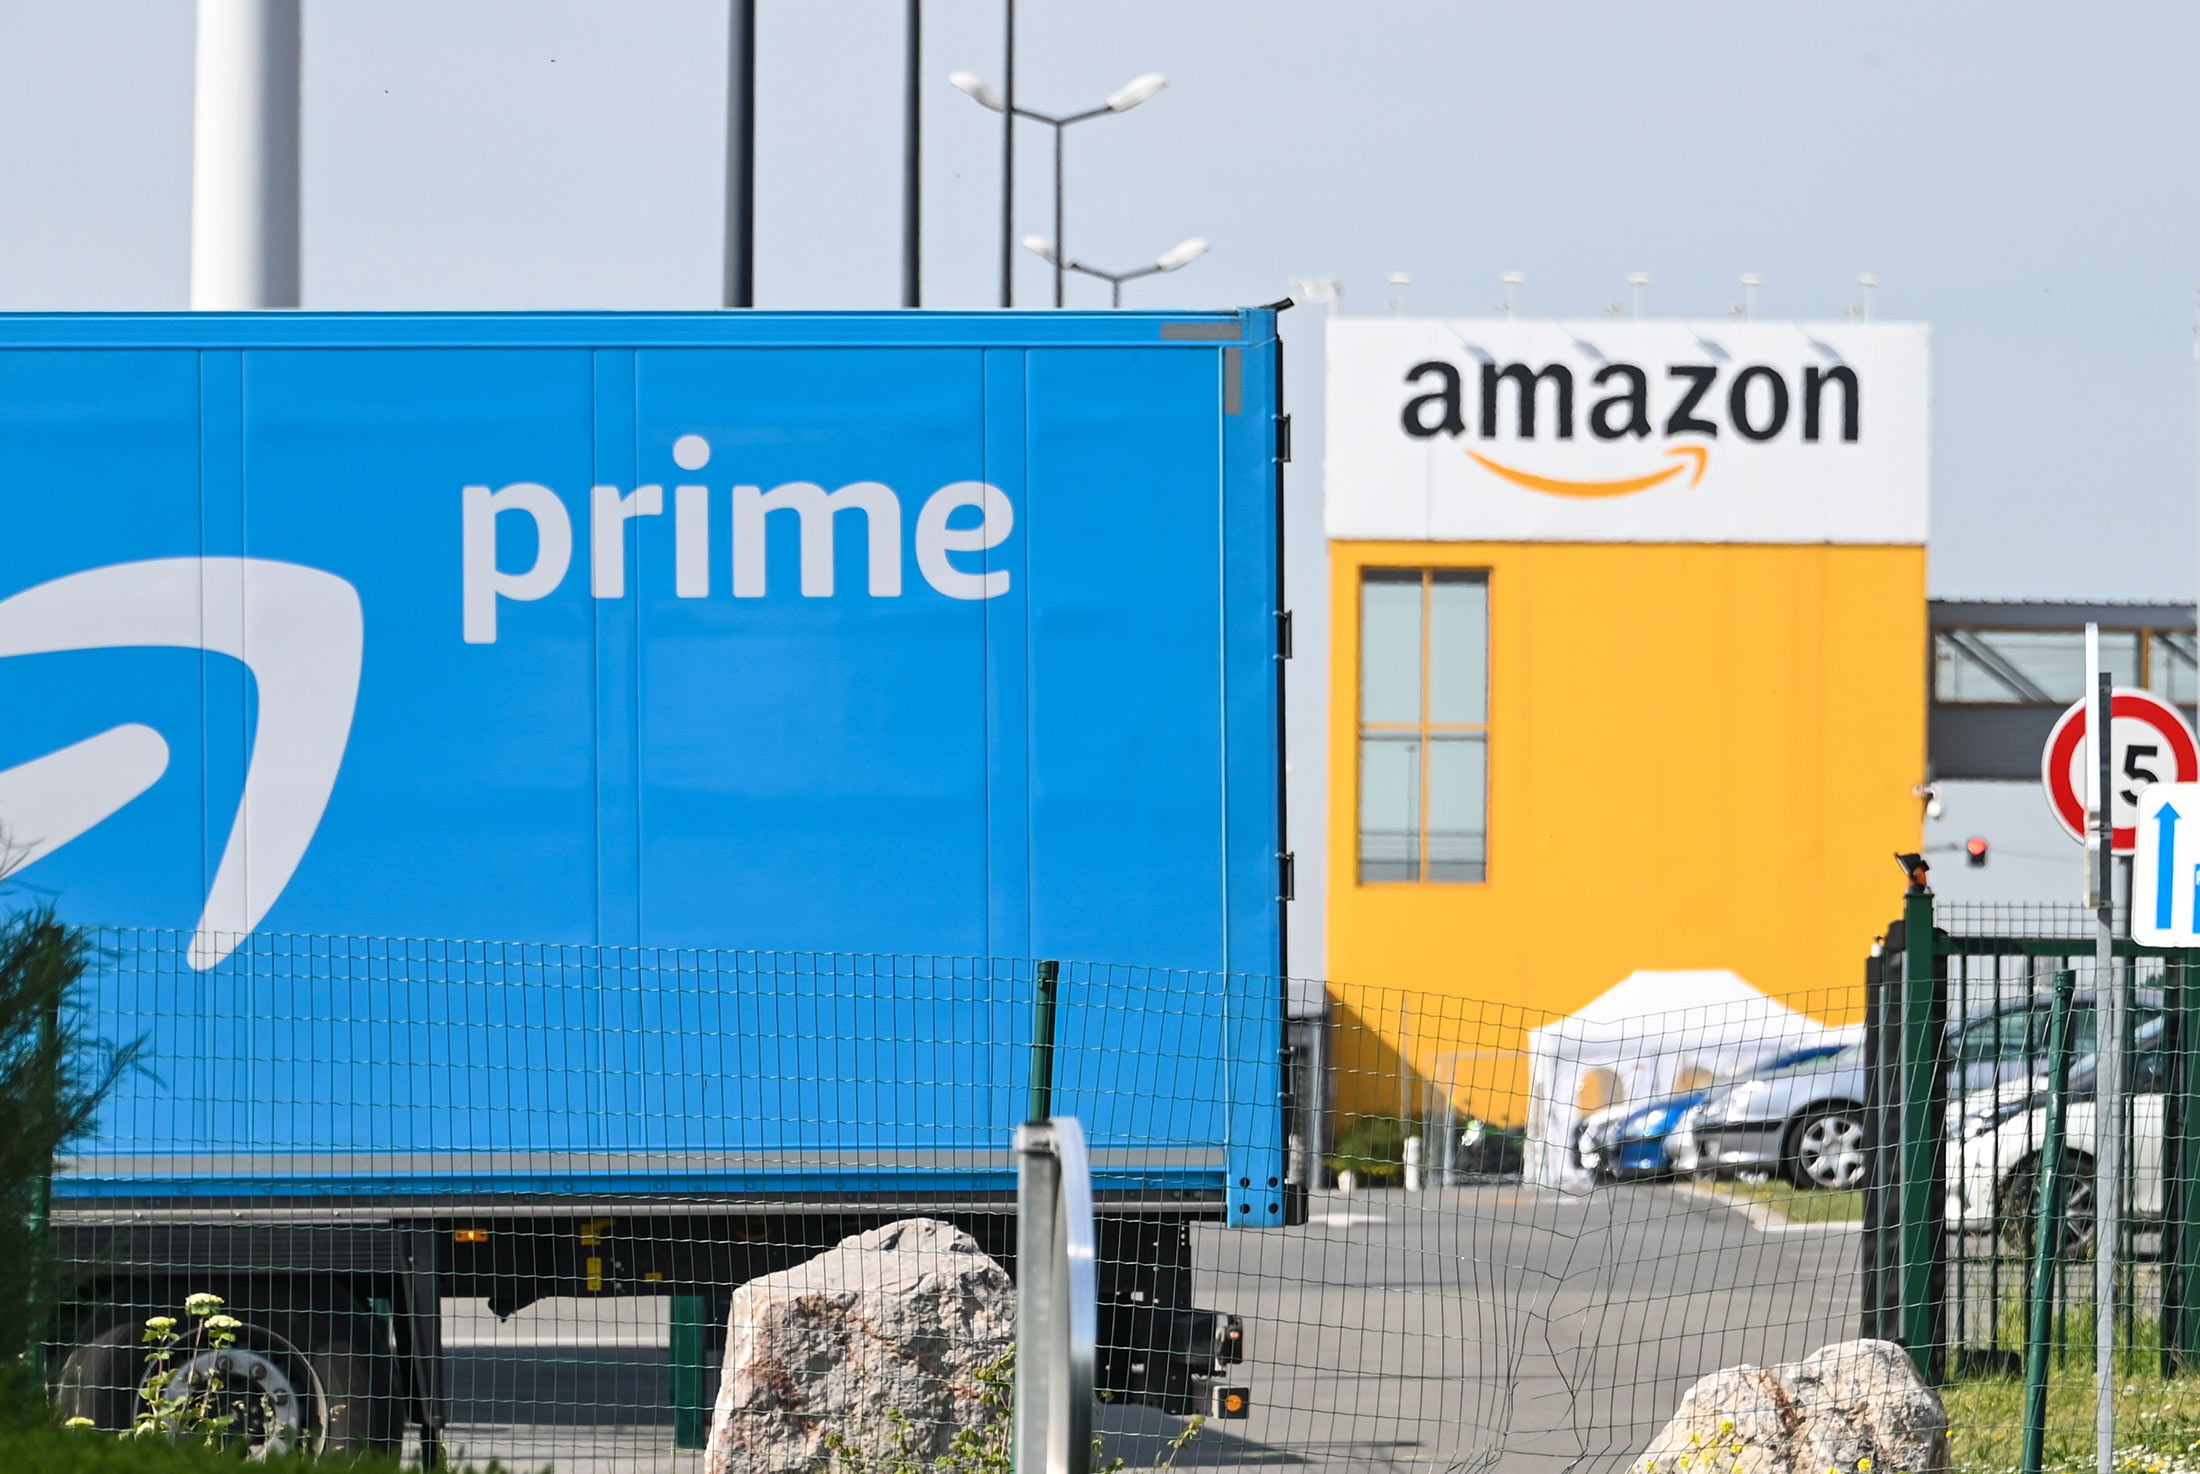 An Amazon delivery lorry is parked outside the Amazon logistics centre in Lauwin-Planque, France, on April 16.